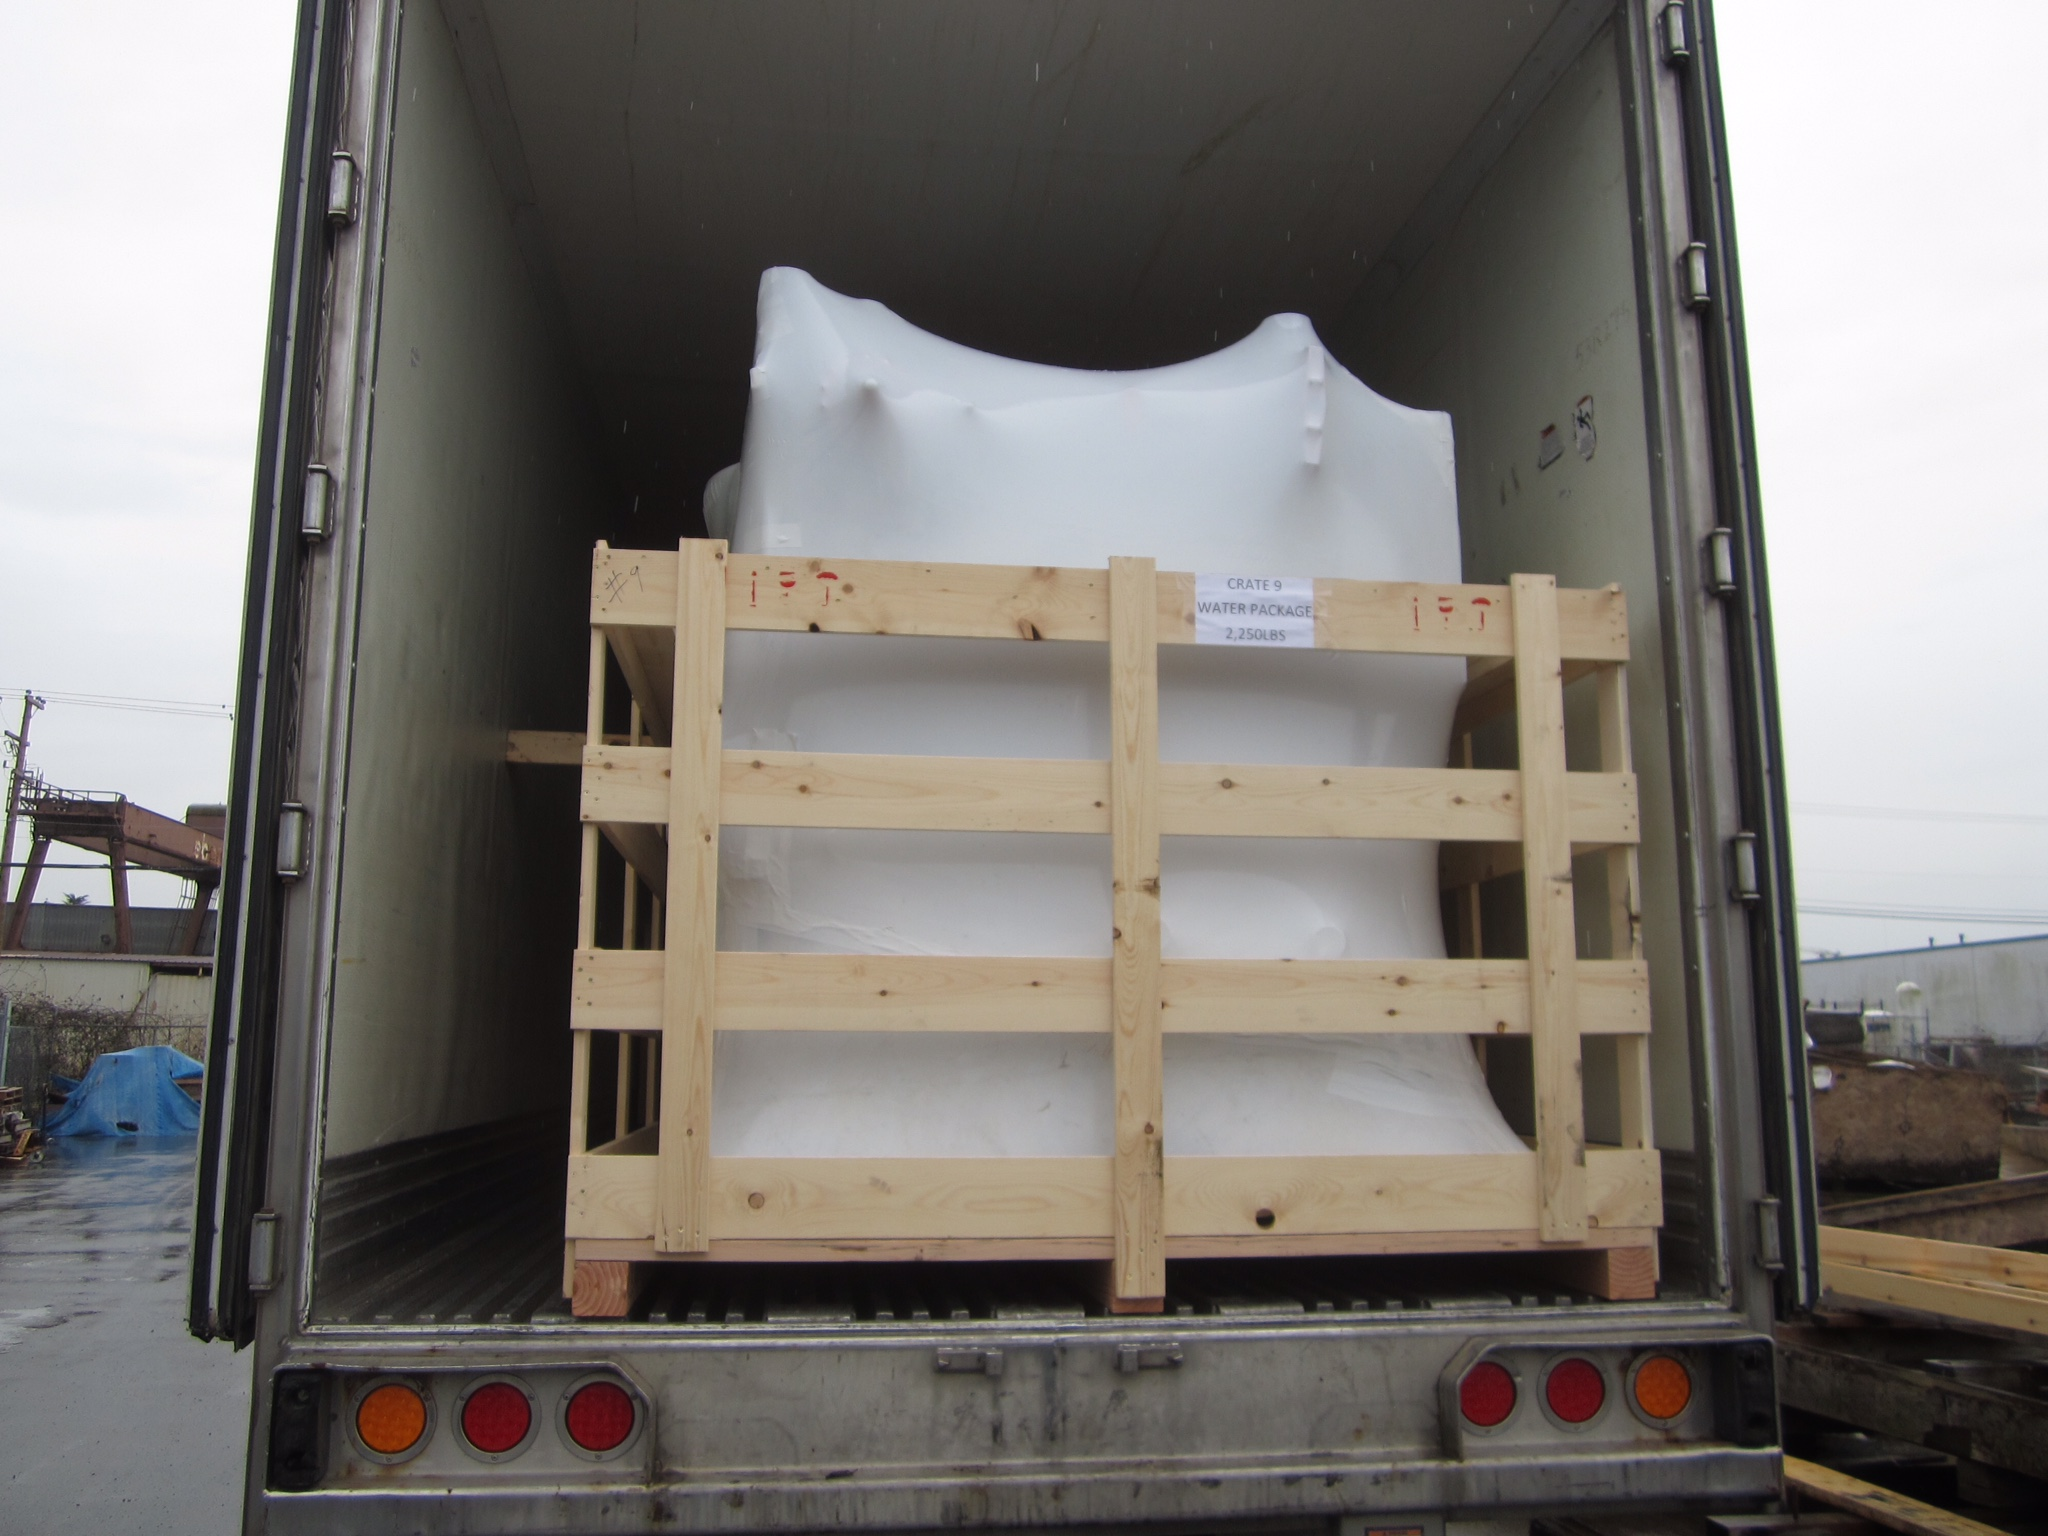 Arrival of cyclotron equipment